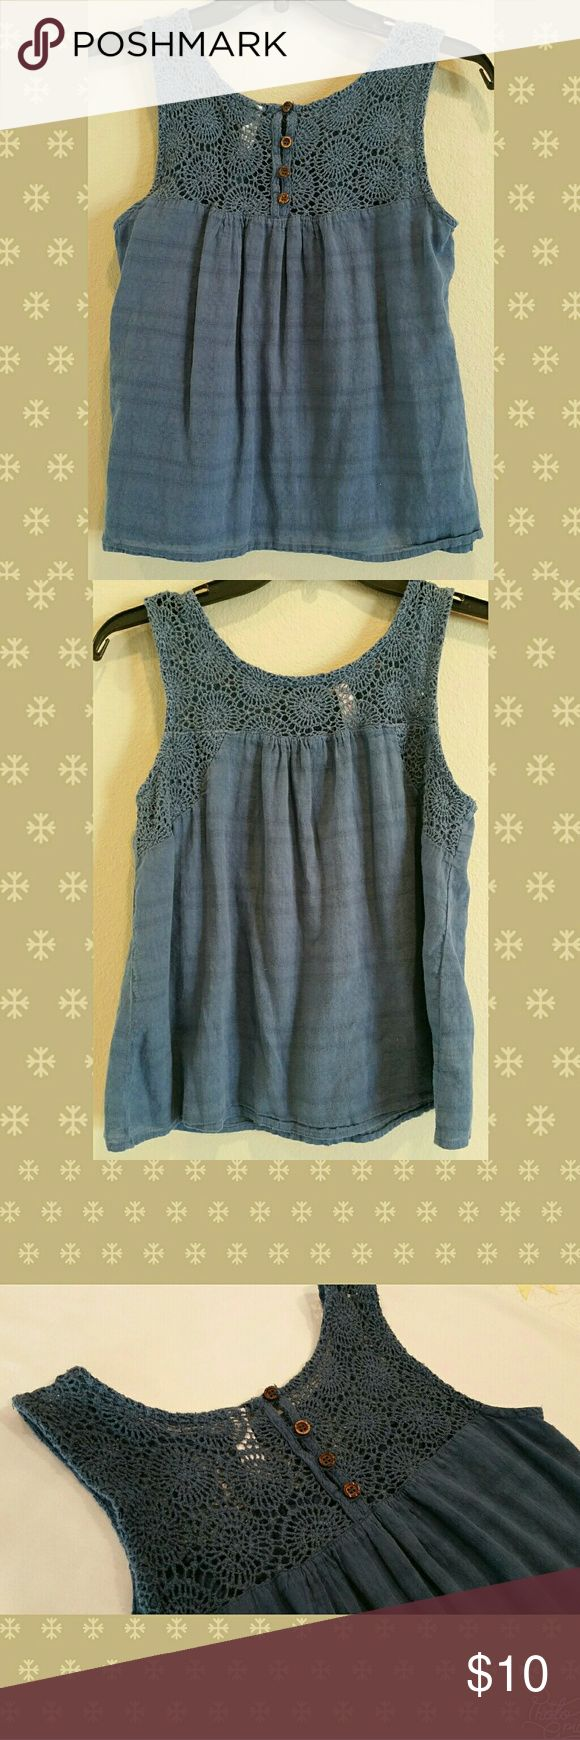 """SOFT FLOWY BOHO CROCHET LACE TOP MUTED BLUE This cute muted blue top has natural wood/coconut shell buttons, open crochet lace weave, & is made from airy, next to nothing weight fabric. Good used condition, does not look new, but certainly lots of life left.  FLAT MEASUREMENT: Pit to Pit  (bust ): 17.5"""" Length: 21.5"""" Bottom opening width: 23 new directions Tops"""